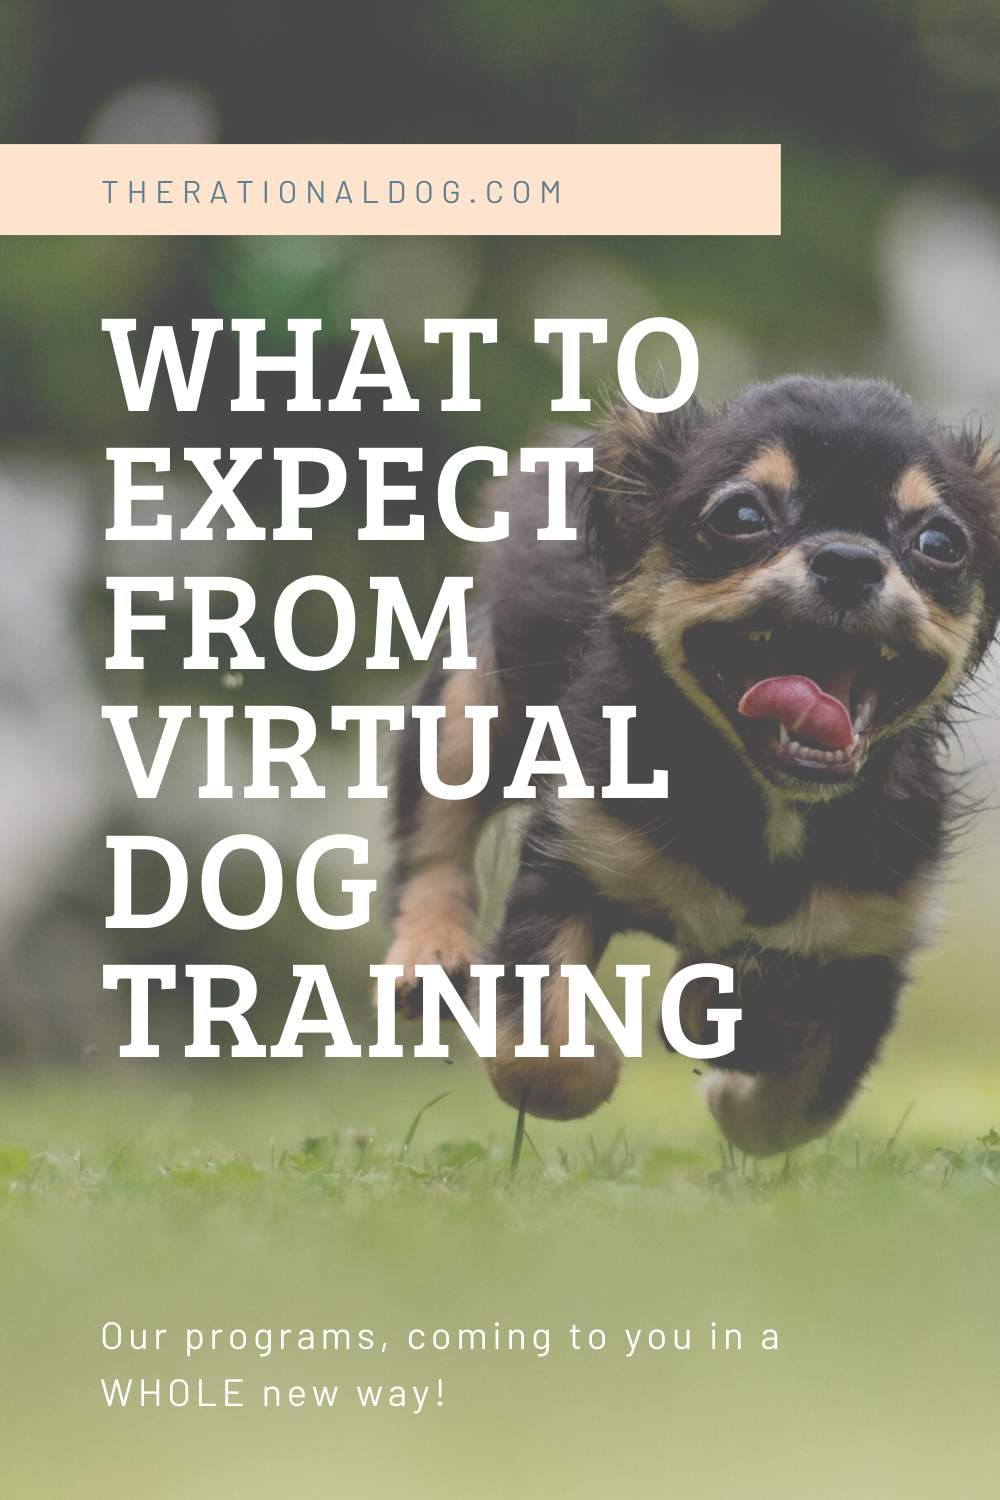 What to expect from Virtual Dog Training